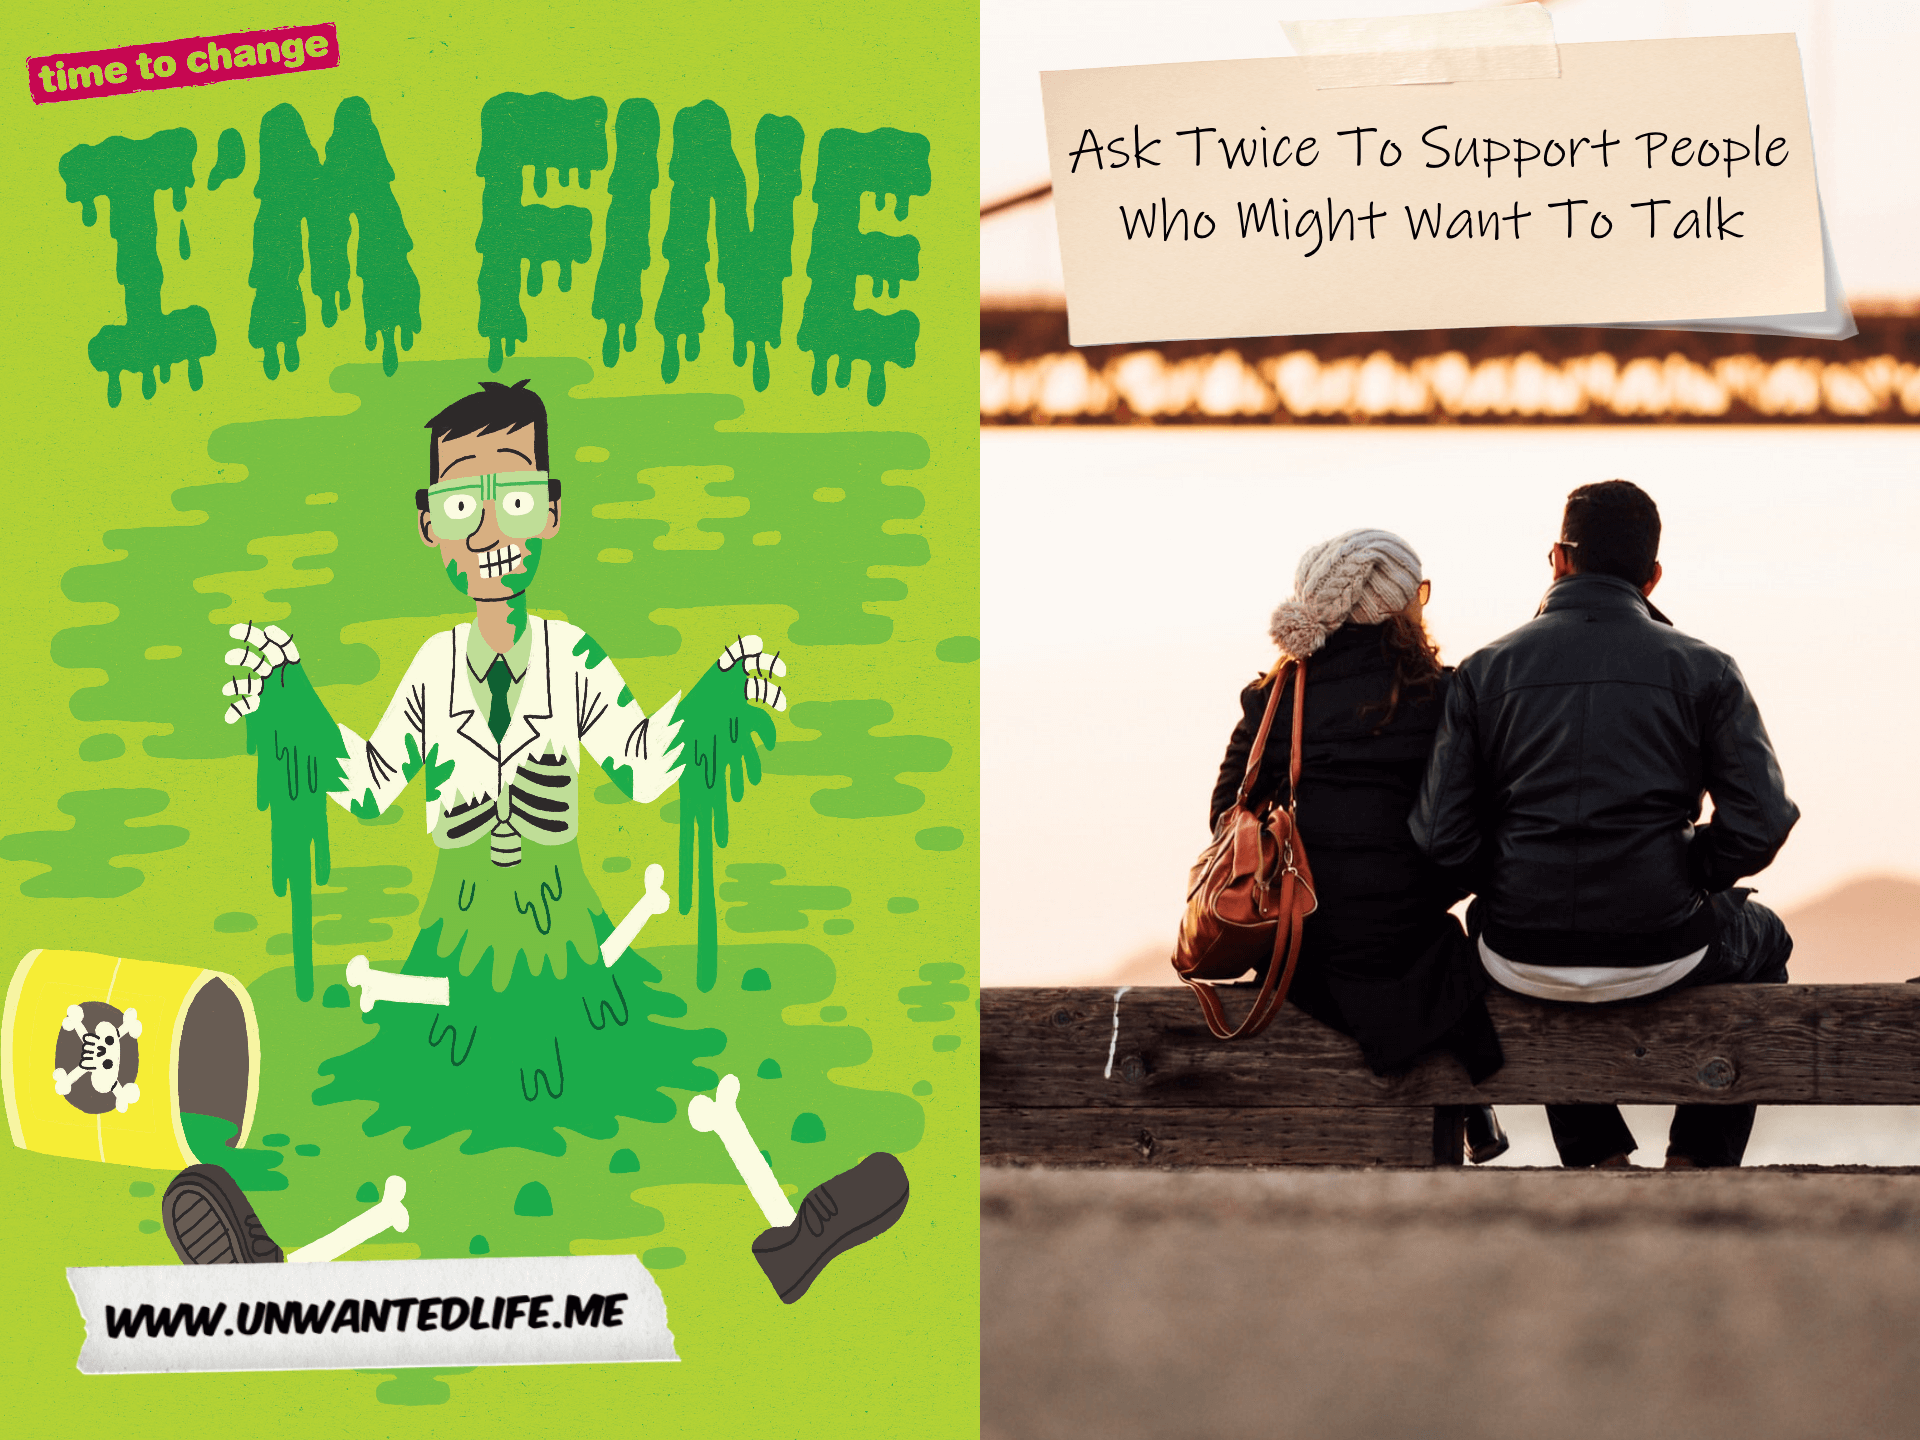 The image spilt in two down the middle with the left image being of a promo picture of a scientist covered in toxic liquid which was created by Time To Chane for their Ask Twice To Support People Who Might Want To Talk campaign. The right image is of a couple sitting together outside, talking